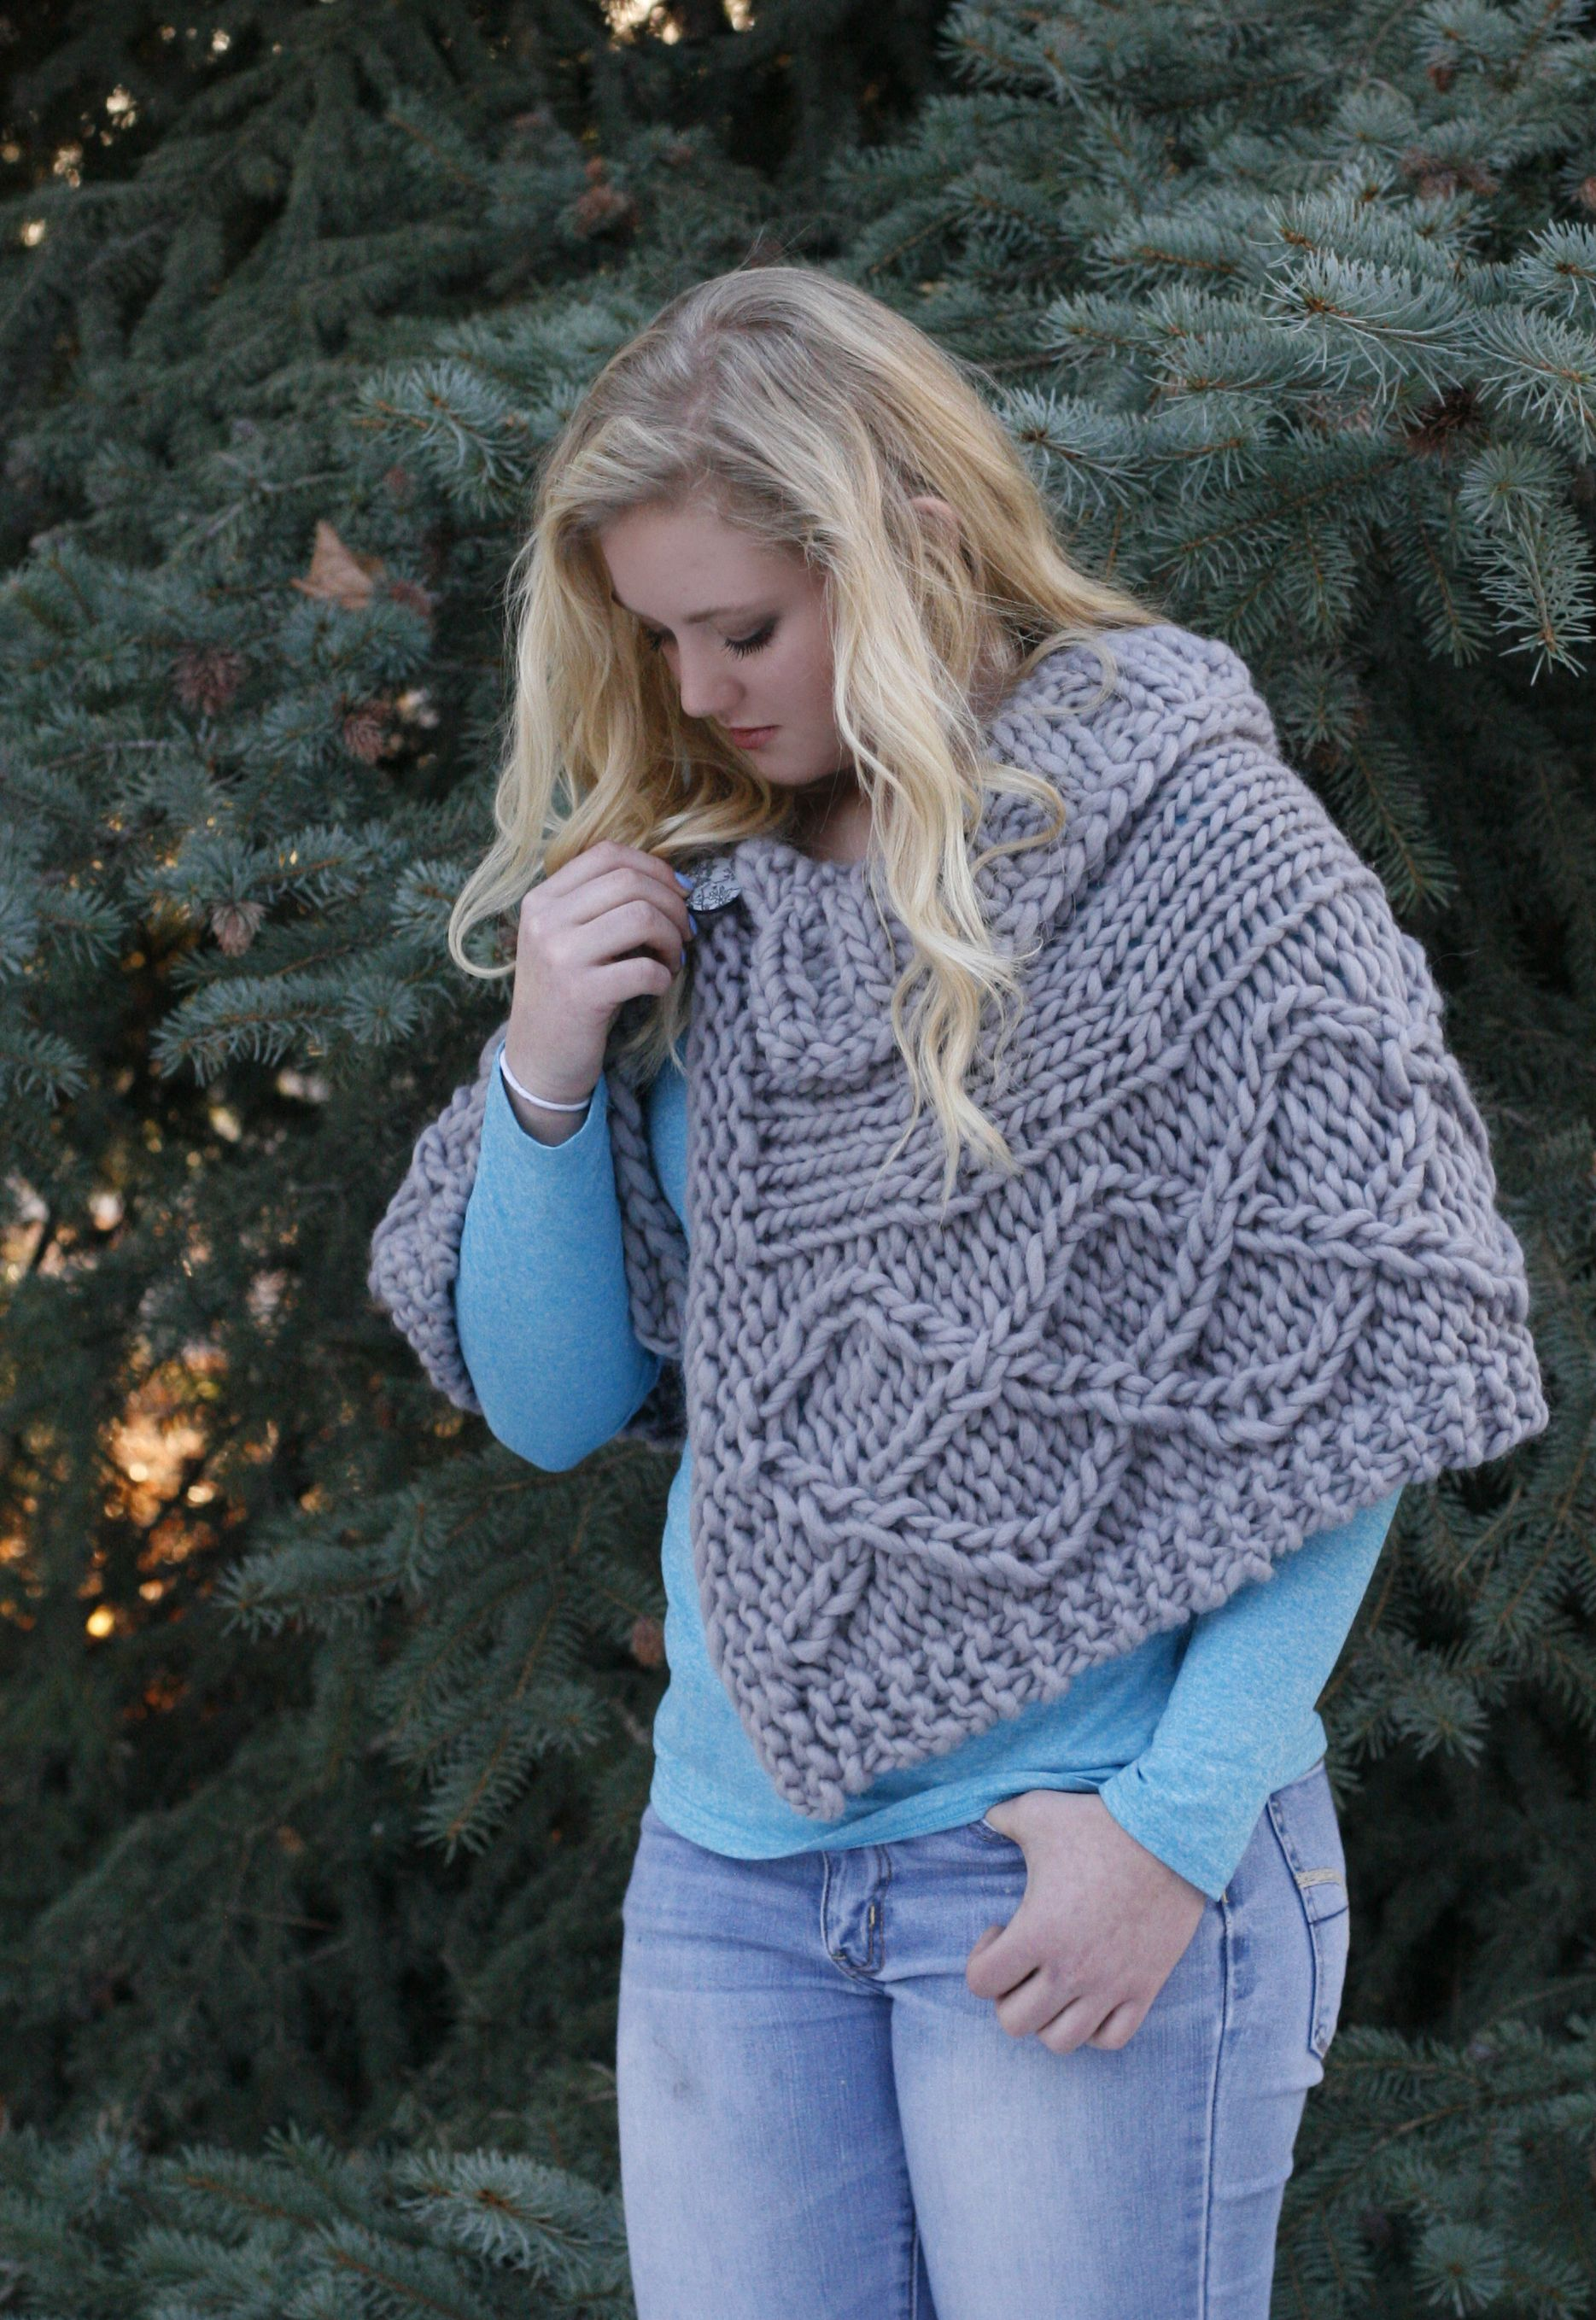 morgaines-capelet-5   Looming   Pinterest   Capelet, Loom knitting ...